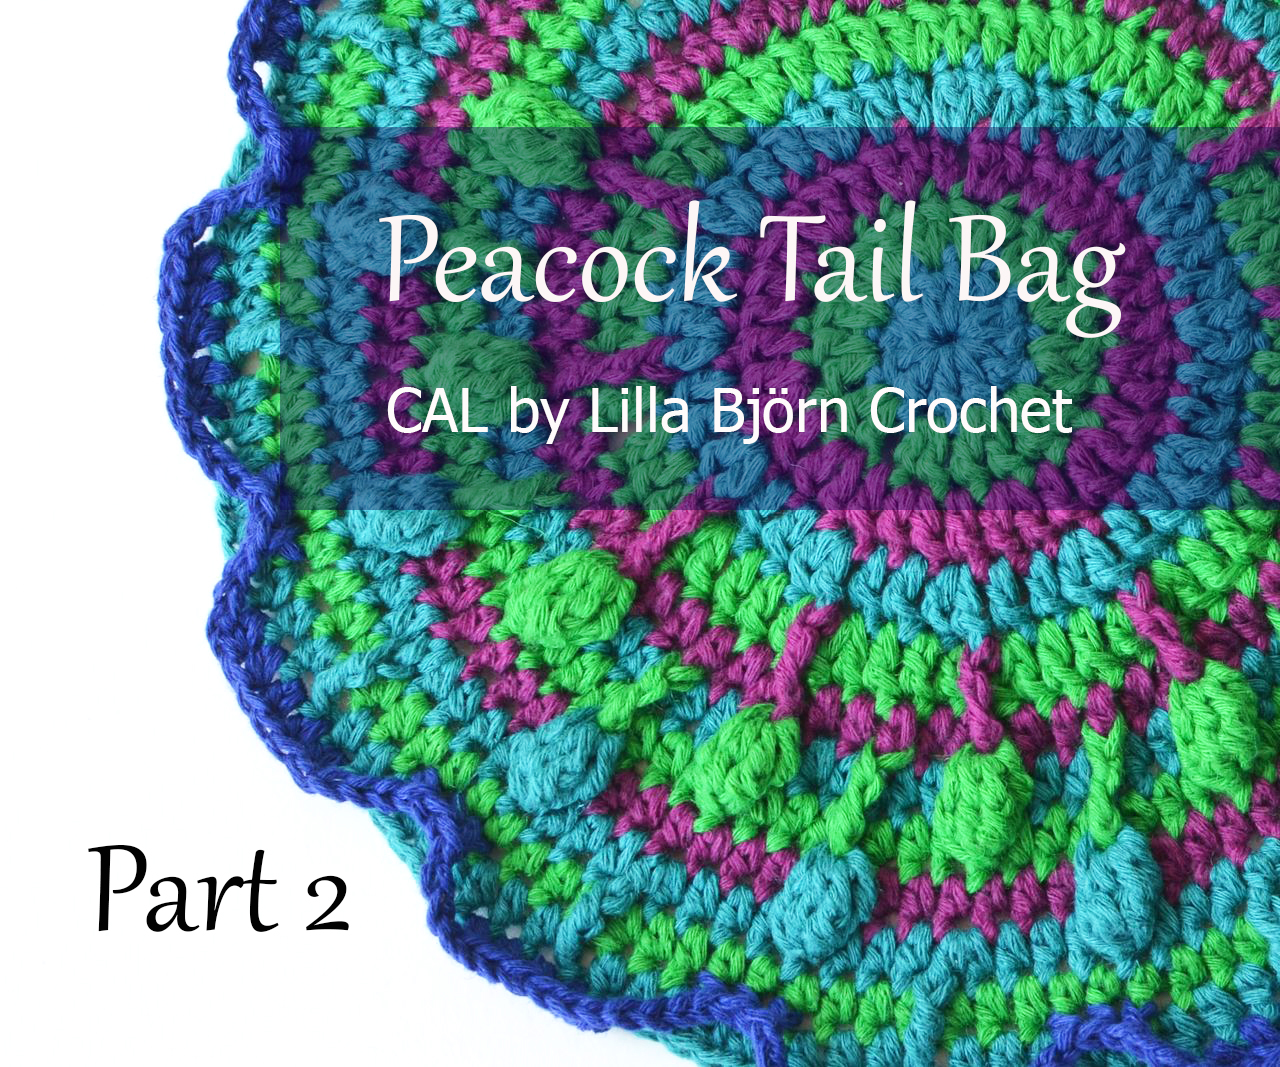 Peacock Tail Bag - Part 2. FREE crochet pattern and original design by Lilla Bjorn Crochet.